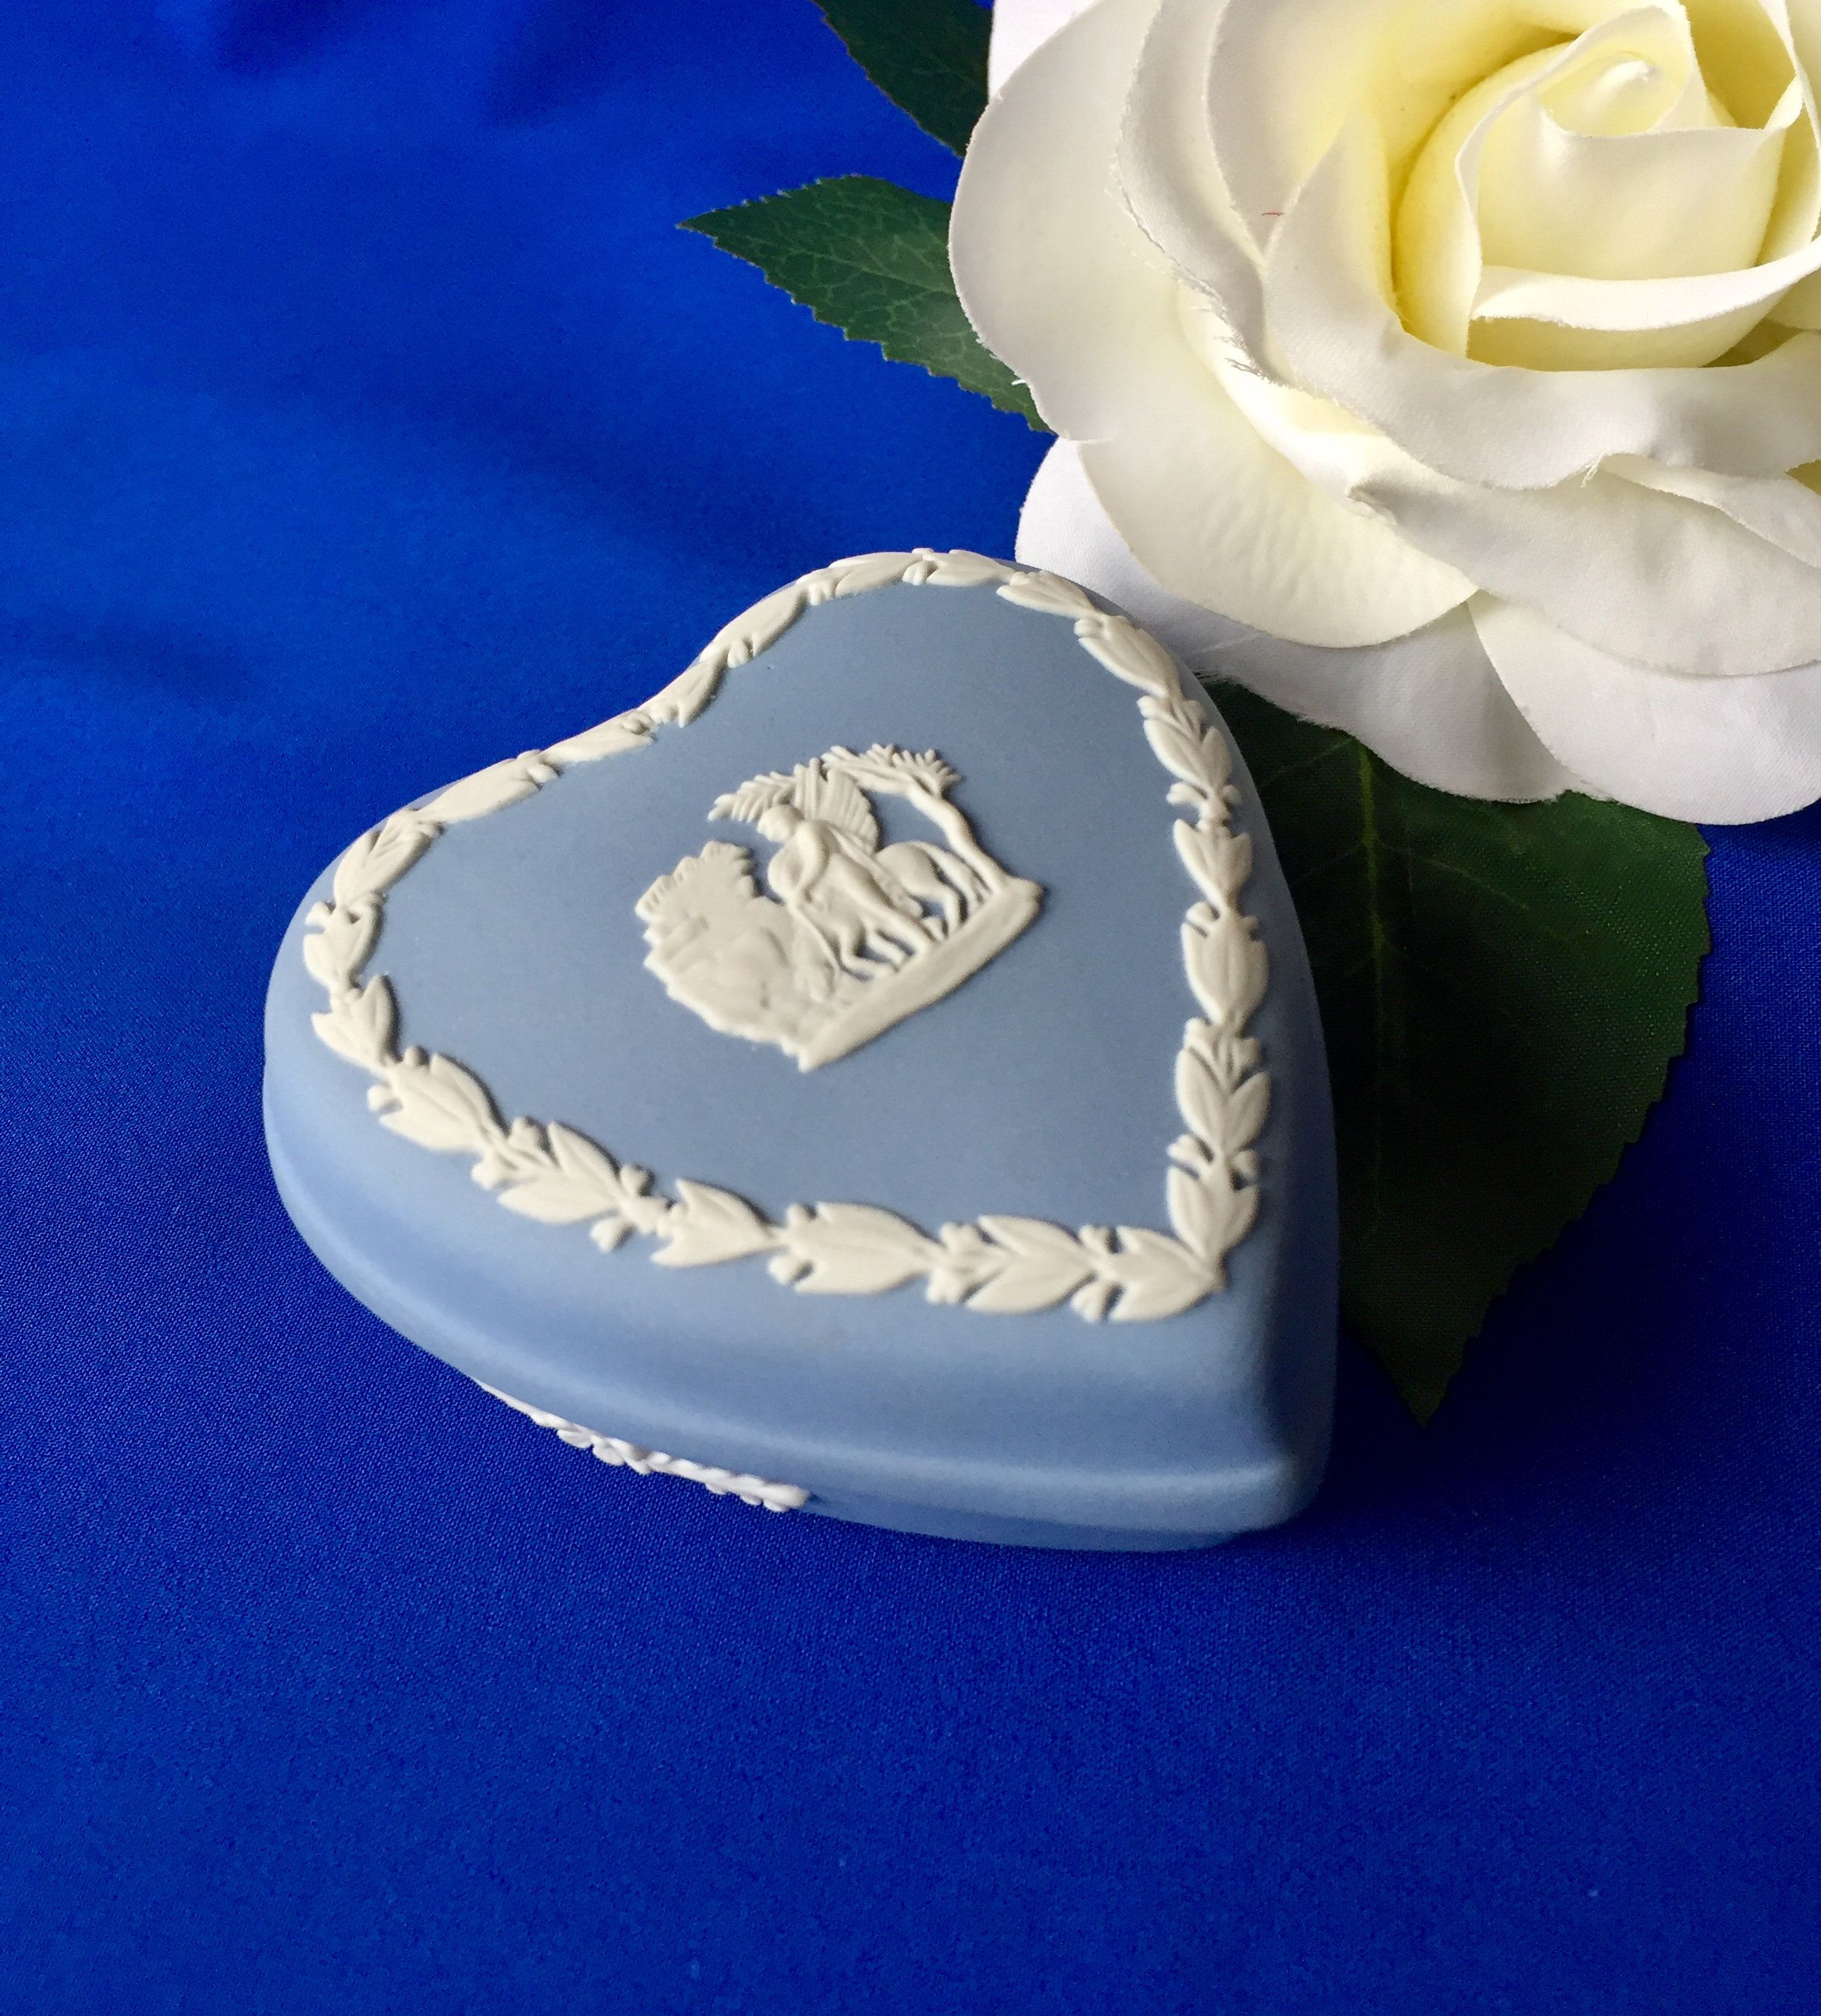 Vintage Wedgwood Blue Jasperware Heart Shaped Trinket Box Wedgwood Heart Shaped Box Wedgwood Vintage Hea In 2020 Heart Shape Box Vintage Rhinestone Brooch Jasperware